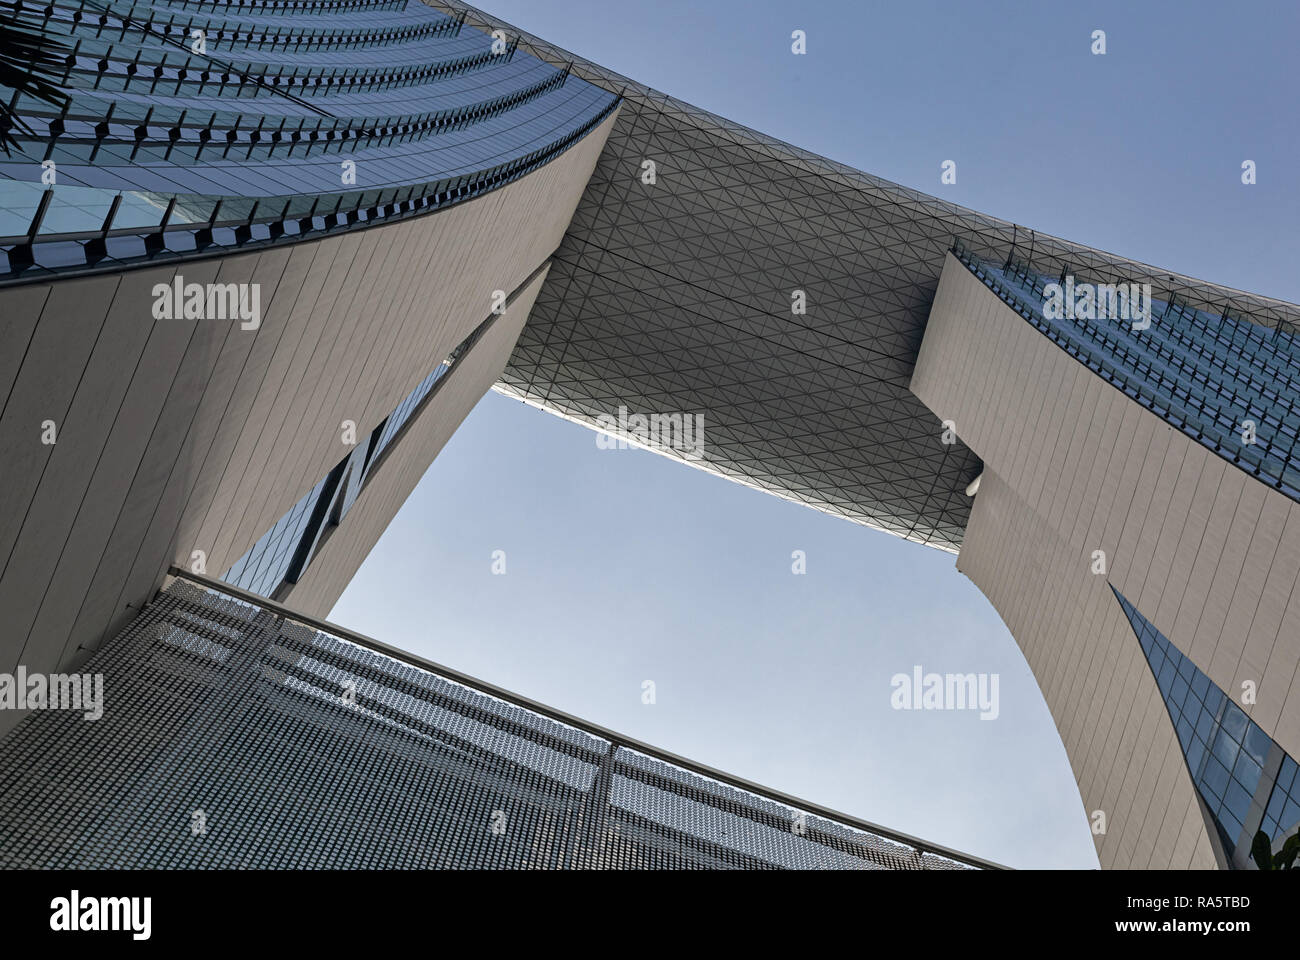 The Marina Bay Sands Hotel in Singapore - Stock Image